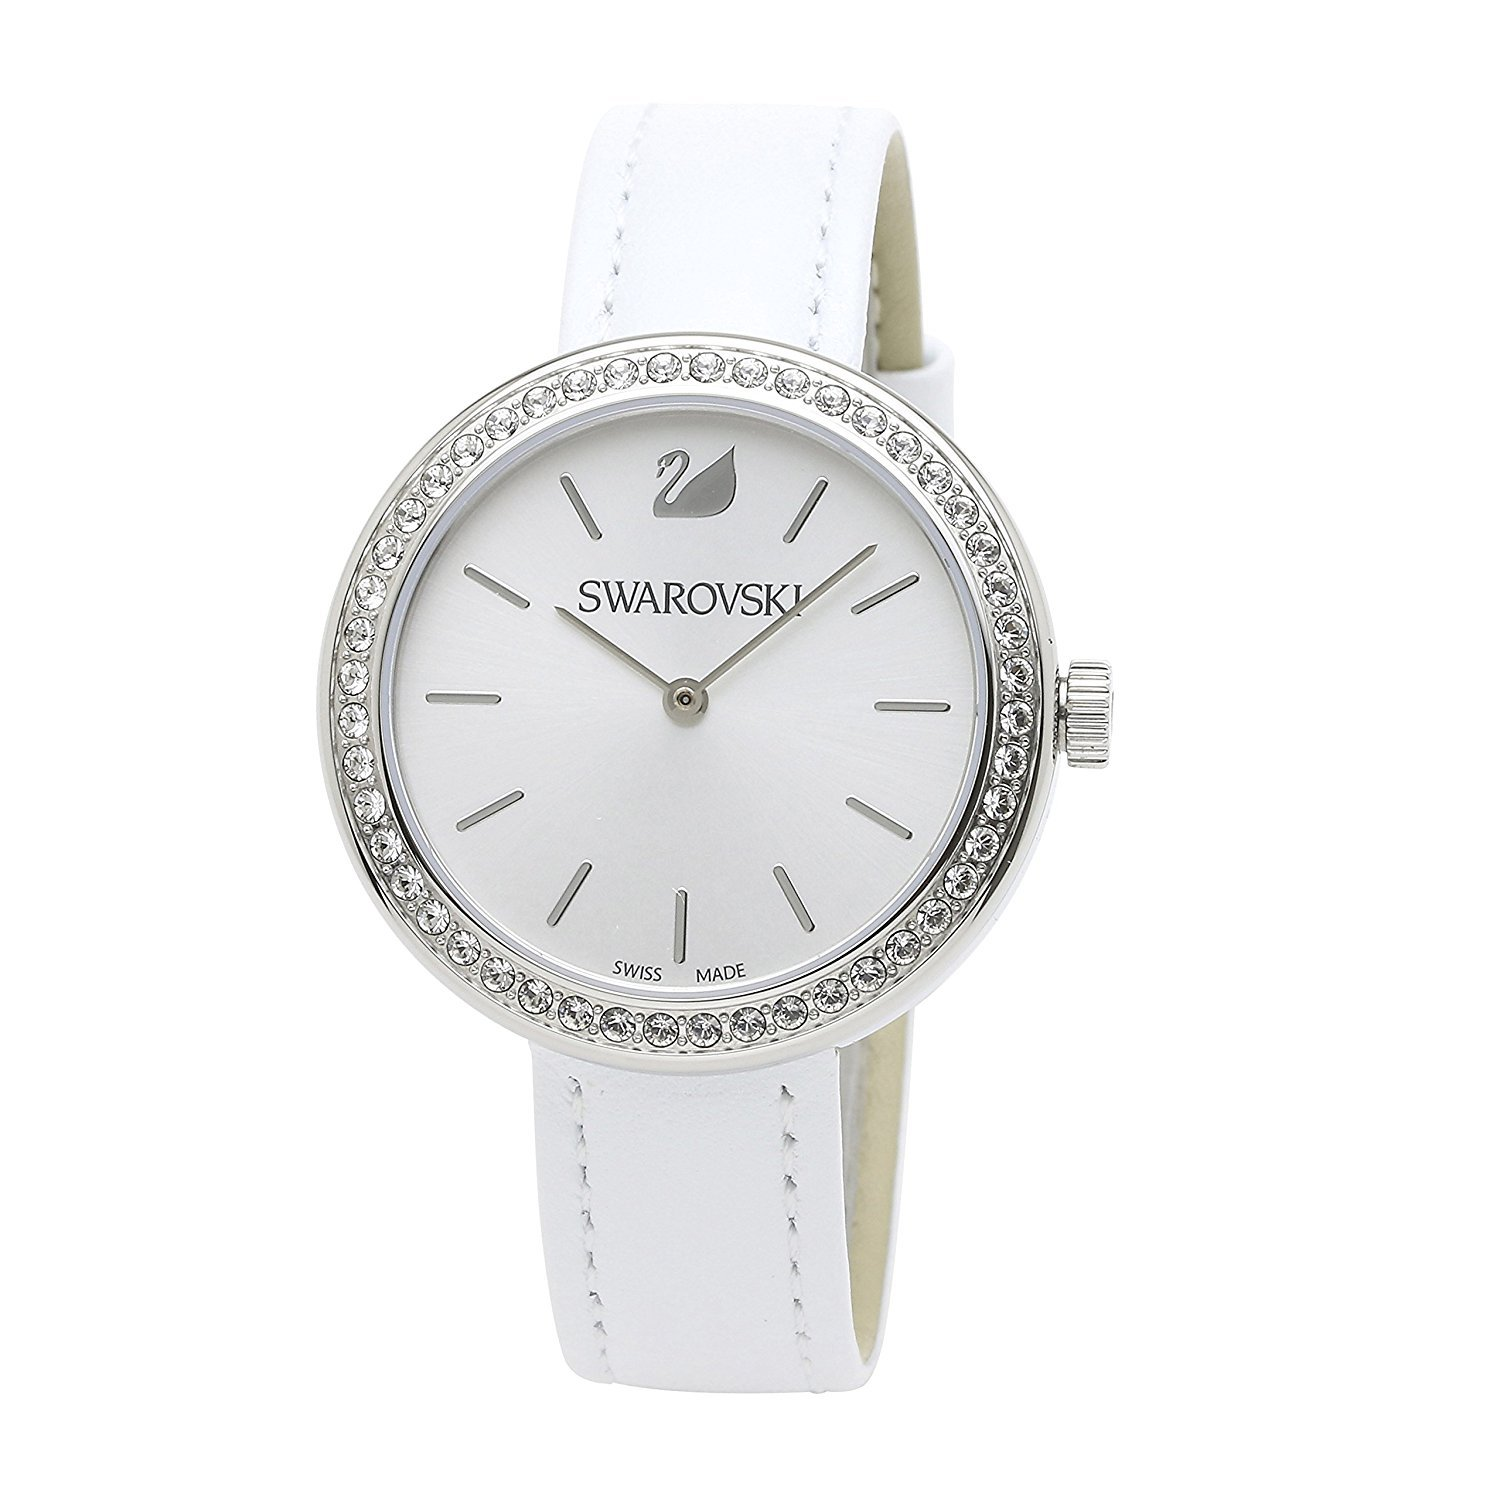 watch quartz htm sale onsalewatches dkny s womens white end women q i watches ceramic am